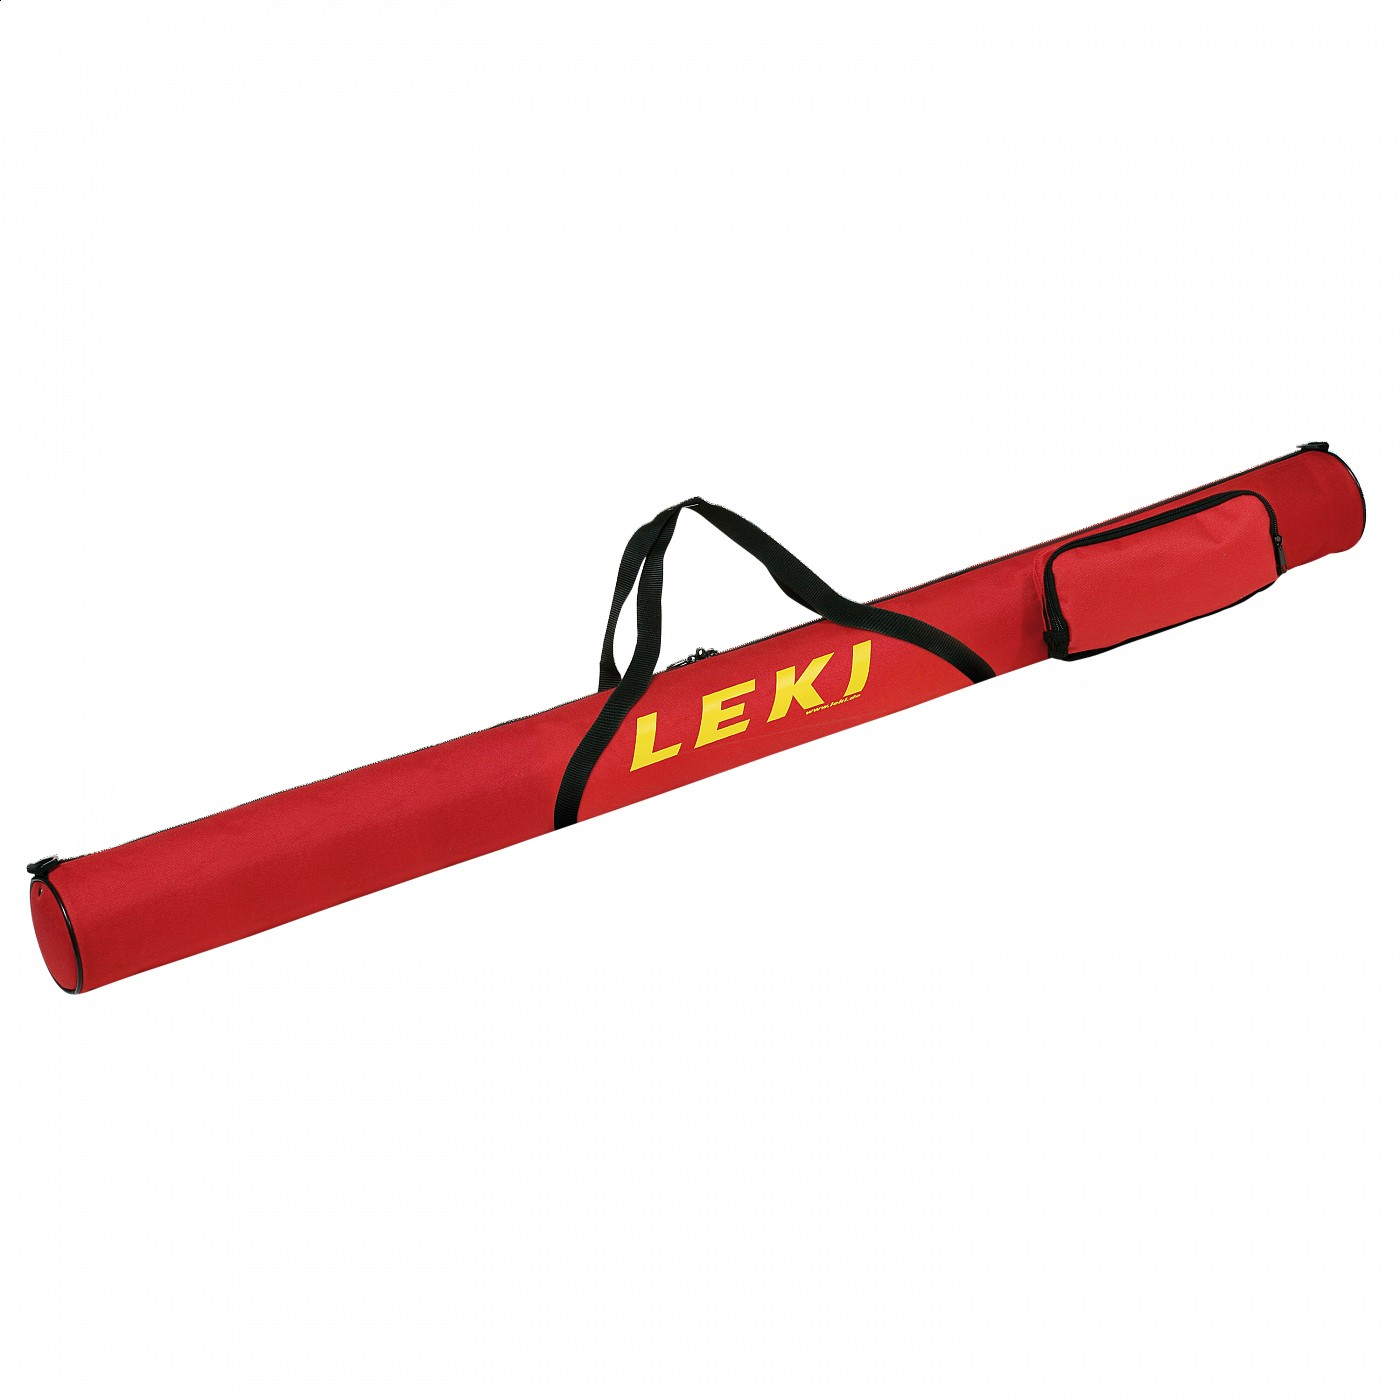 Leki trainer ski pole bag